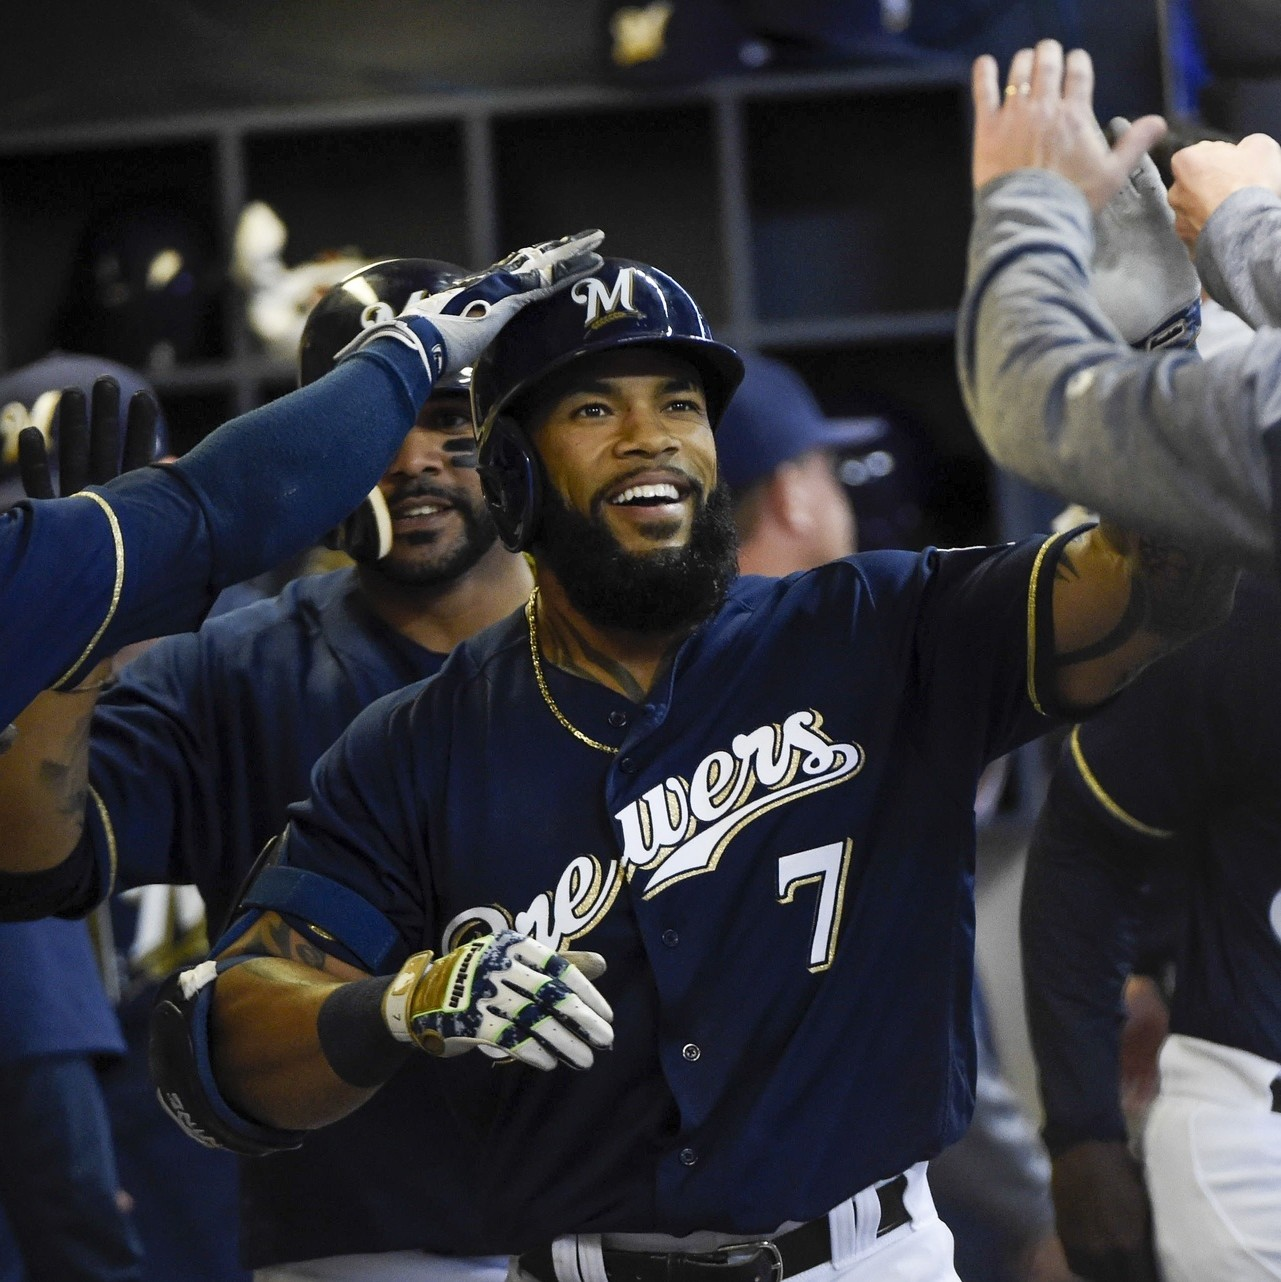 Eric-thames-has-your-urine-right-here-yakkin-about-baseball-1493401403.jpg?crop=0